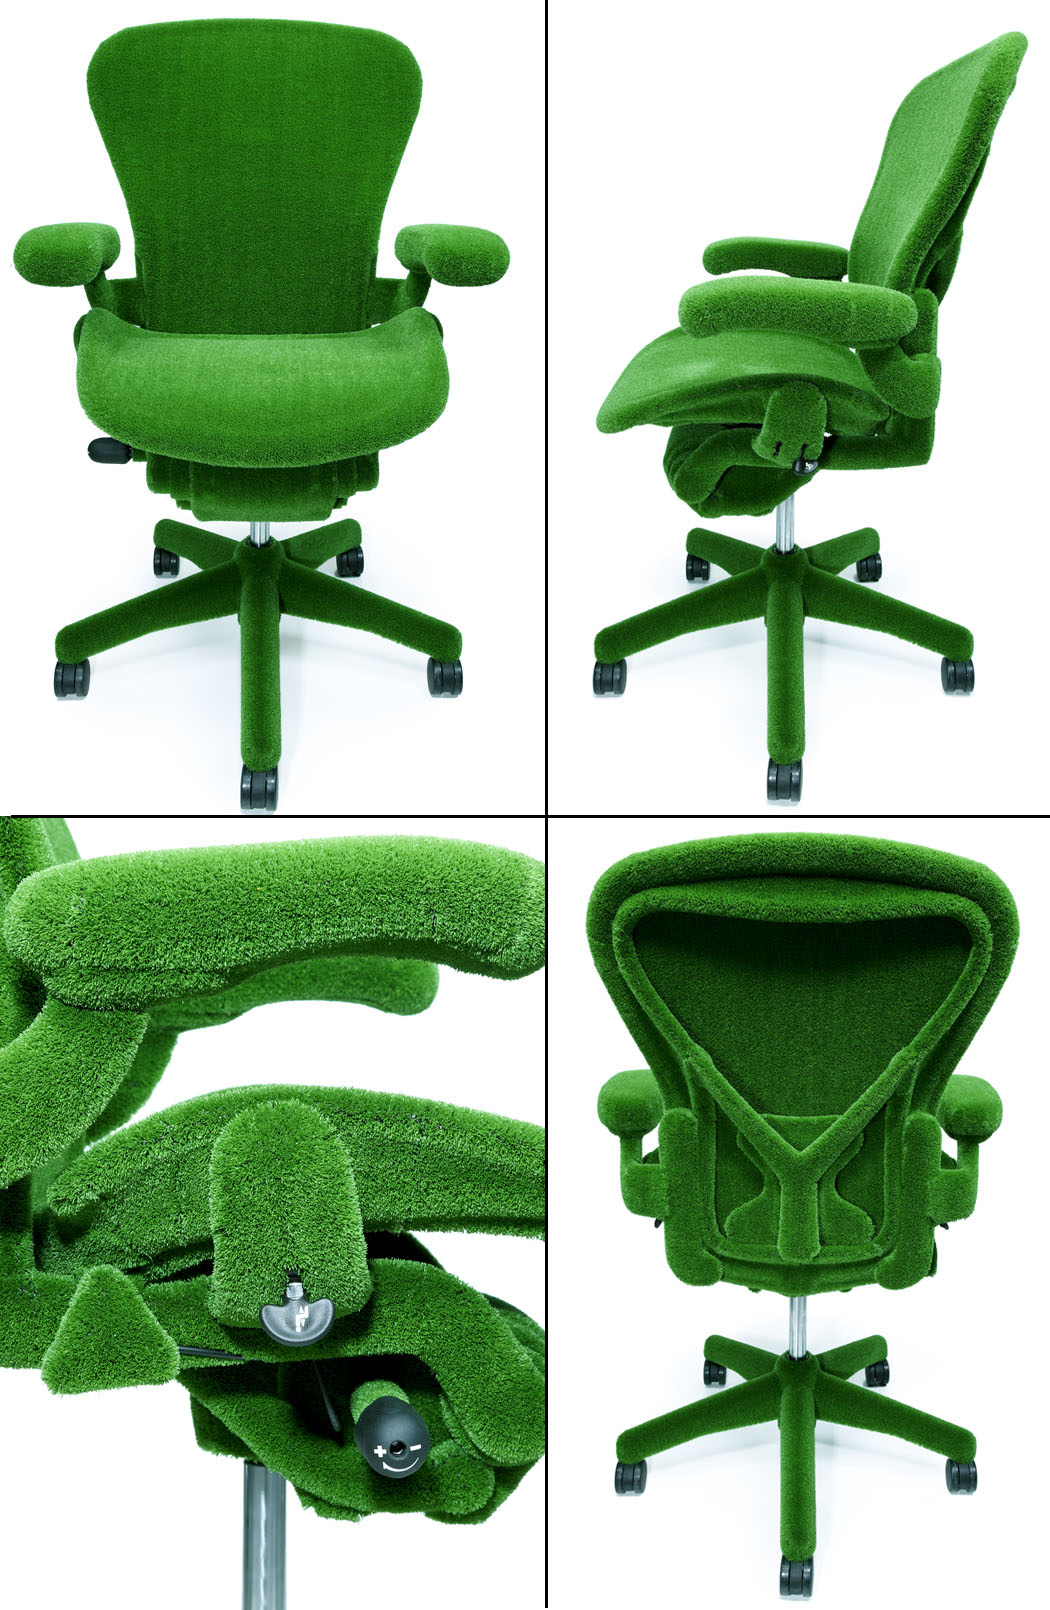 Herman Miller Aeron Chair Parts Give Awesome Look for Office with ...